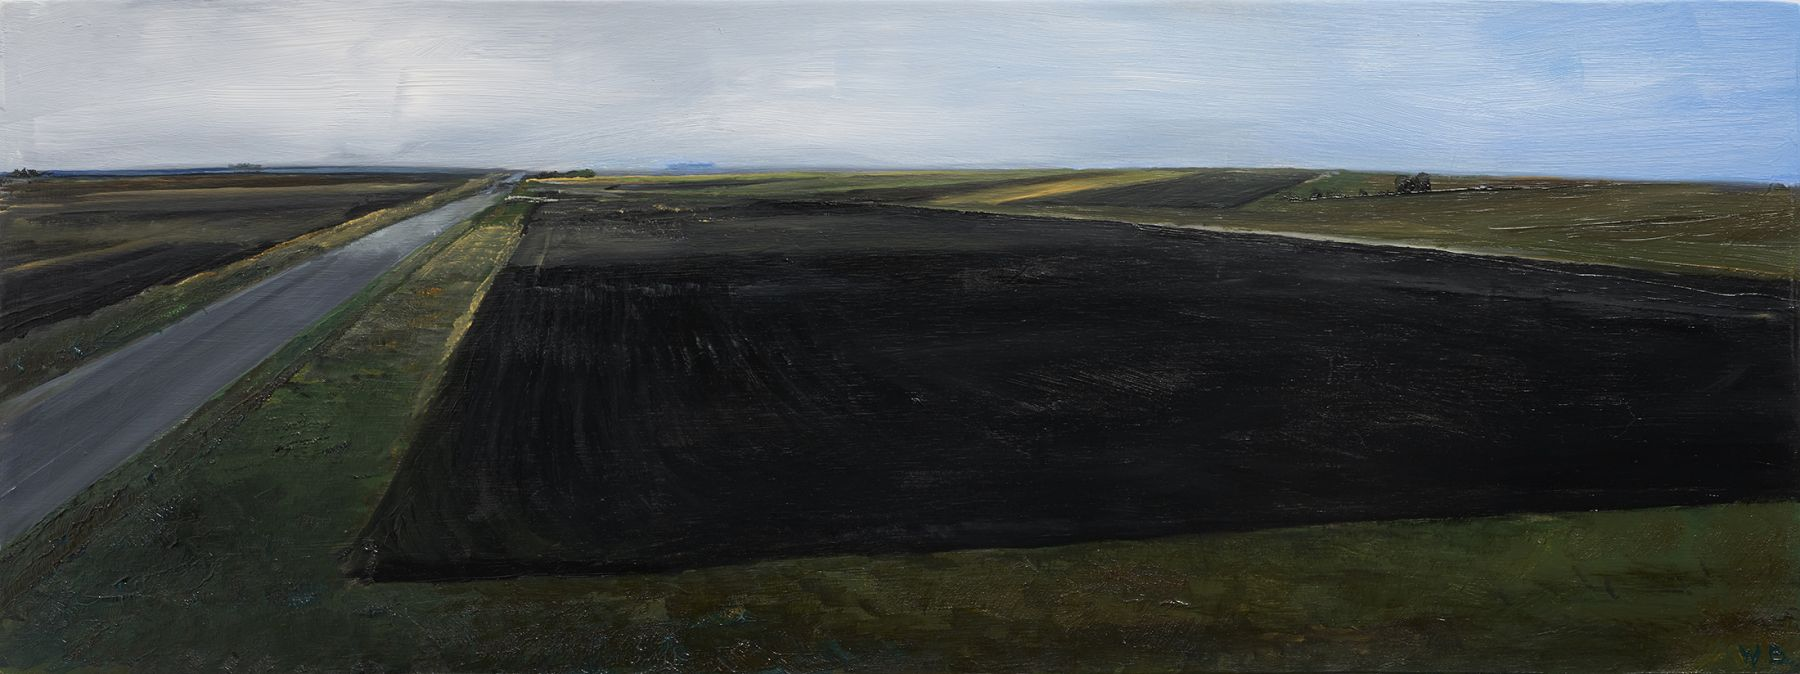 William Beckman Montana Plowed Field #1, 2020 oil on panel 7 x 18 1/4 inches